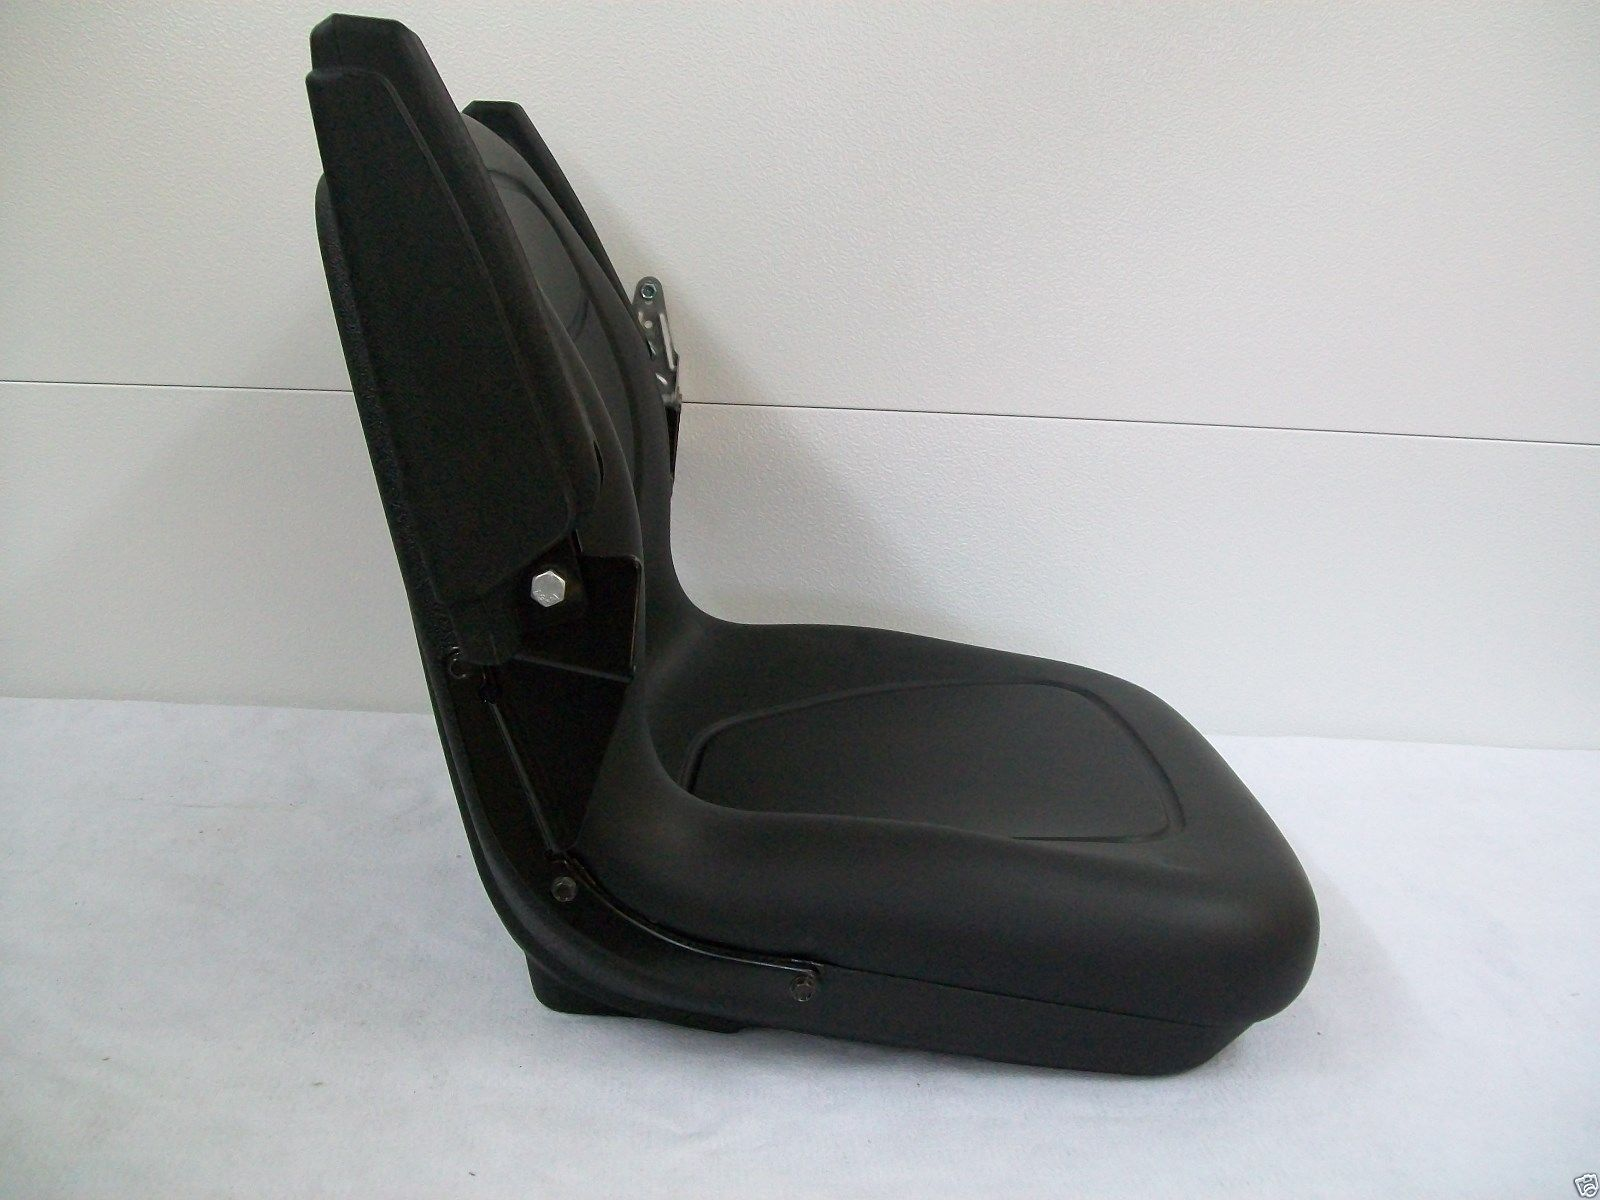 BLACK SEAT FIT KUBOTA B7410 B7510 B7610 B2710 B2910 COMPACT TRACTOR GG 171917610807 4 black seat fit kubota b7410, b7510, b7610, b2710, b2910 compact kubota b7510 wiring diagram at readyjetset.co